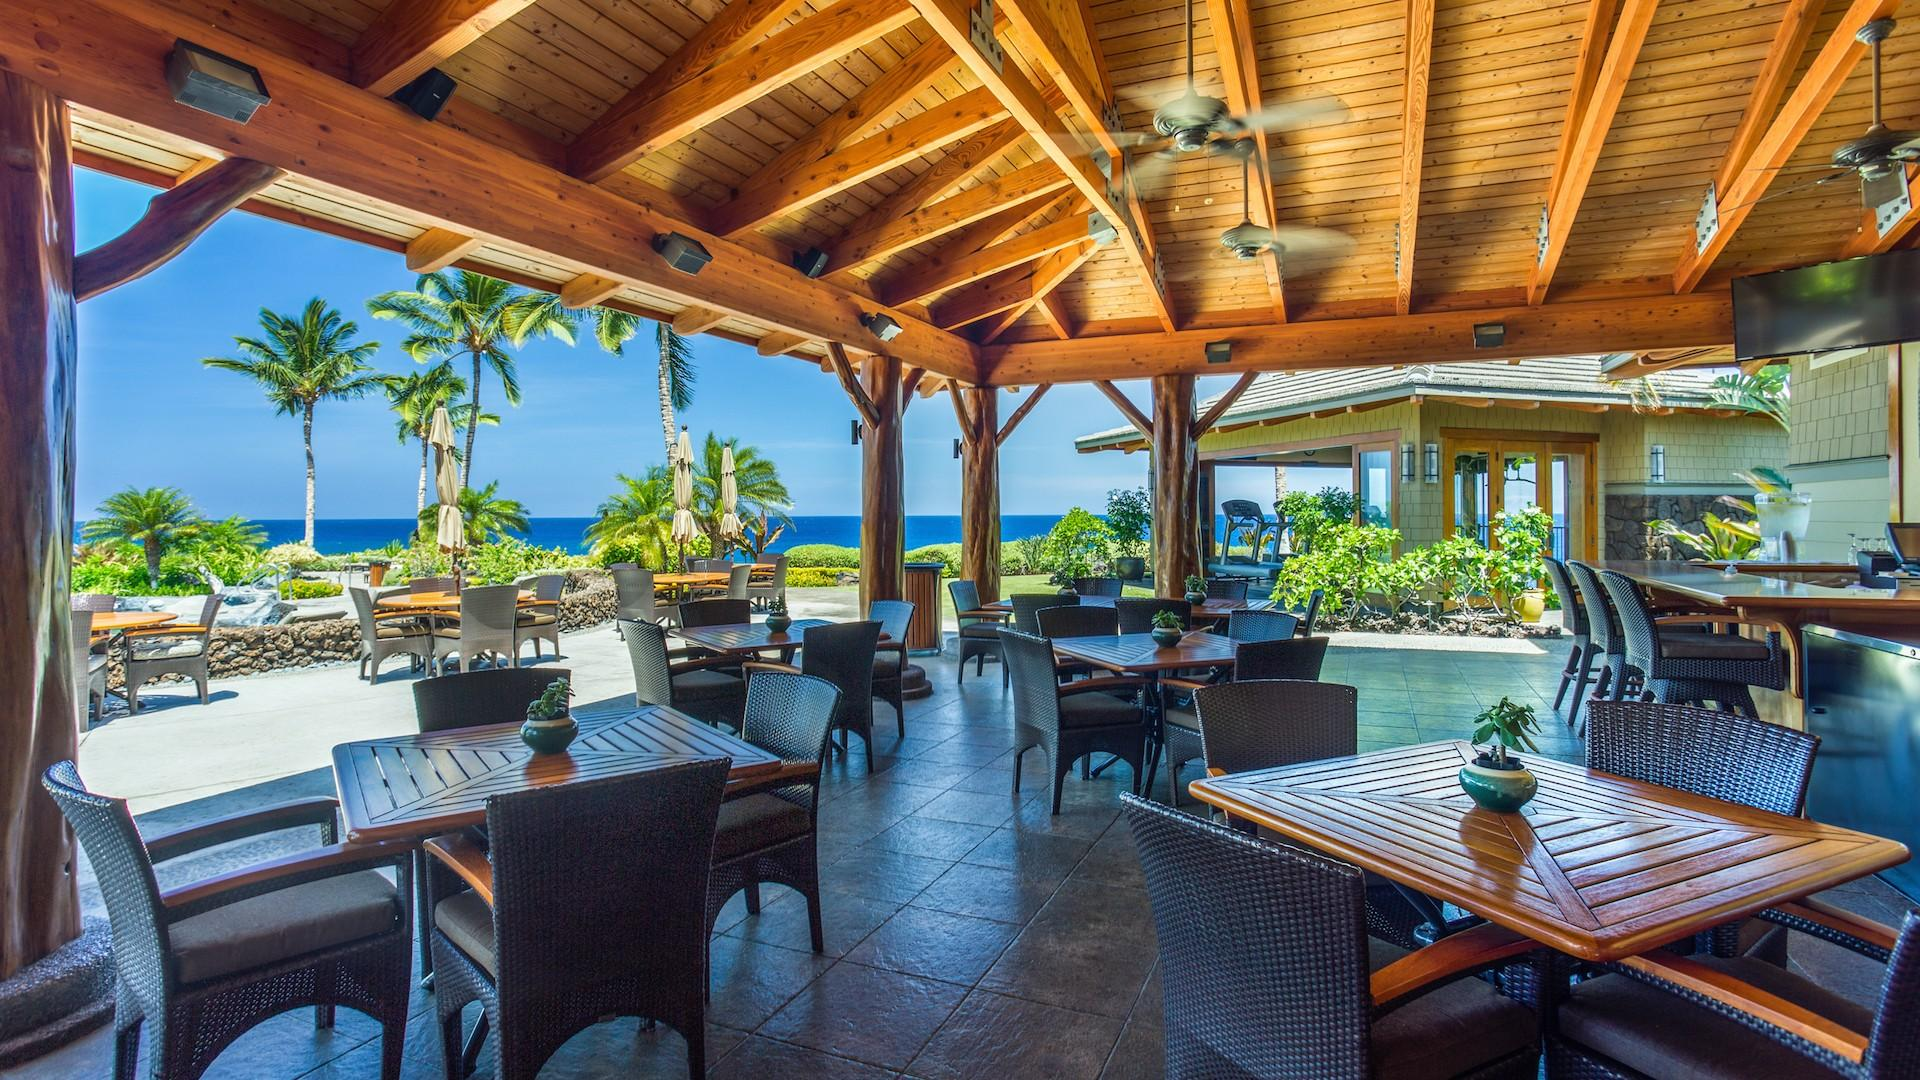 More seating options and views at Hali'i Kai Resort's private Ocean Club Bar & Grille